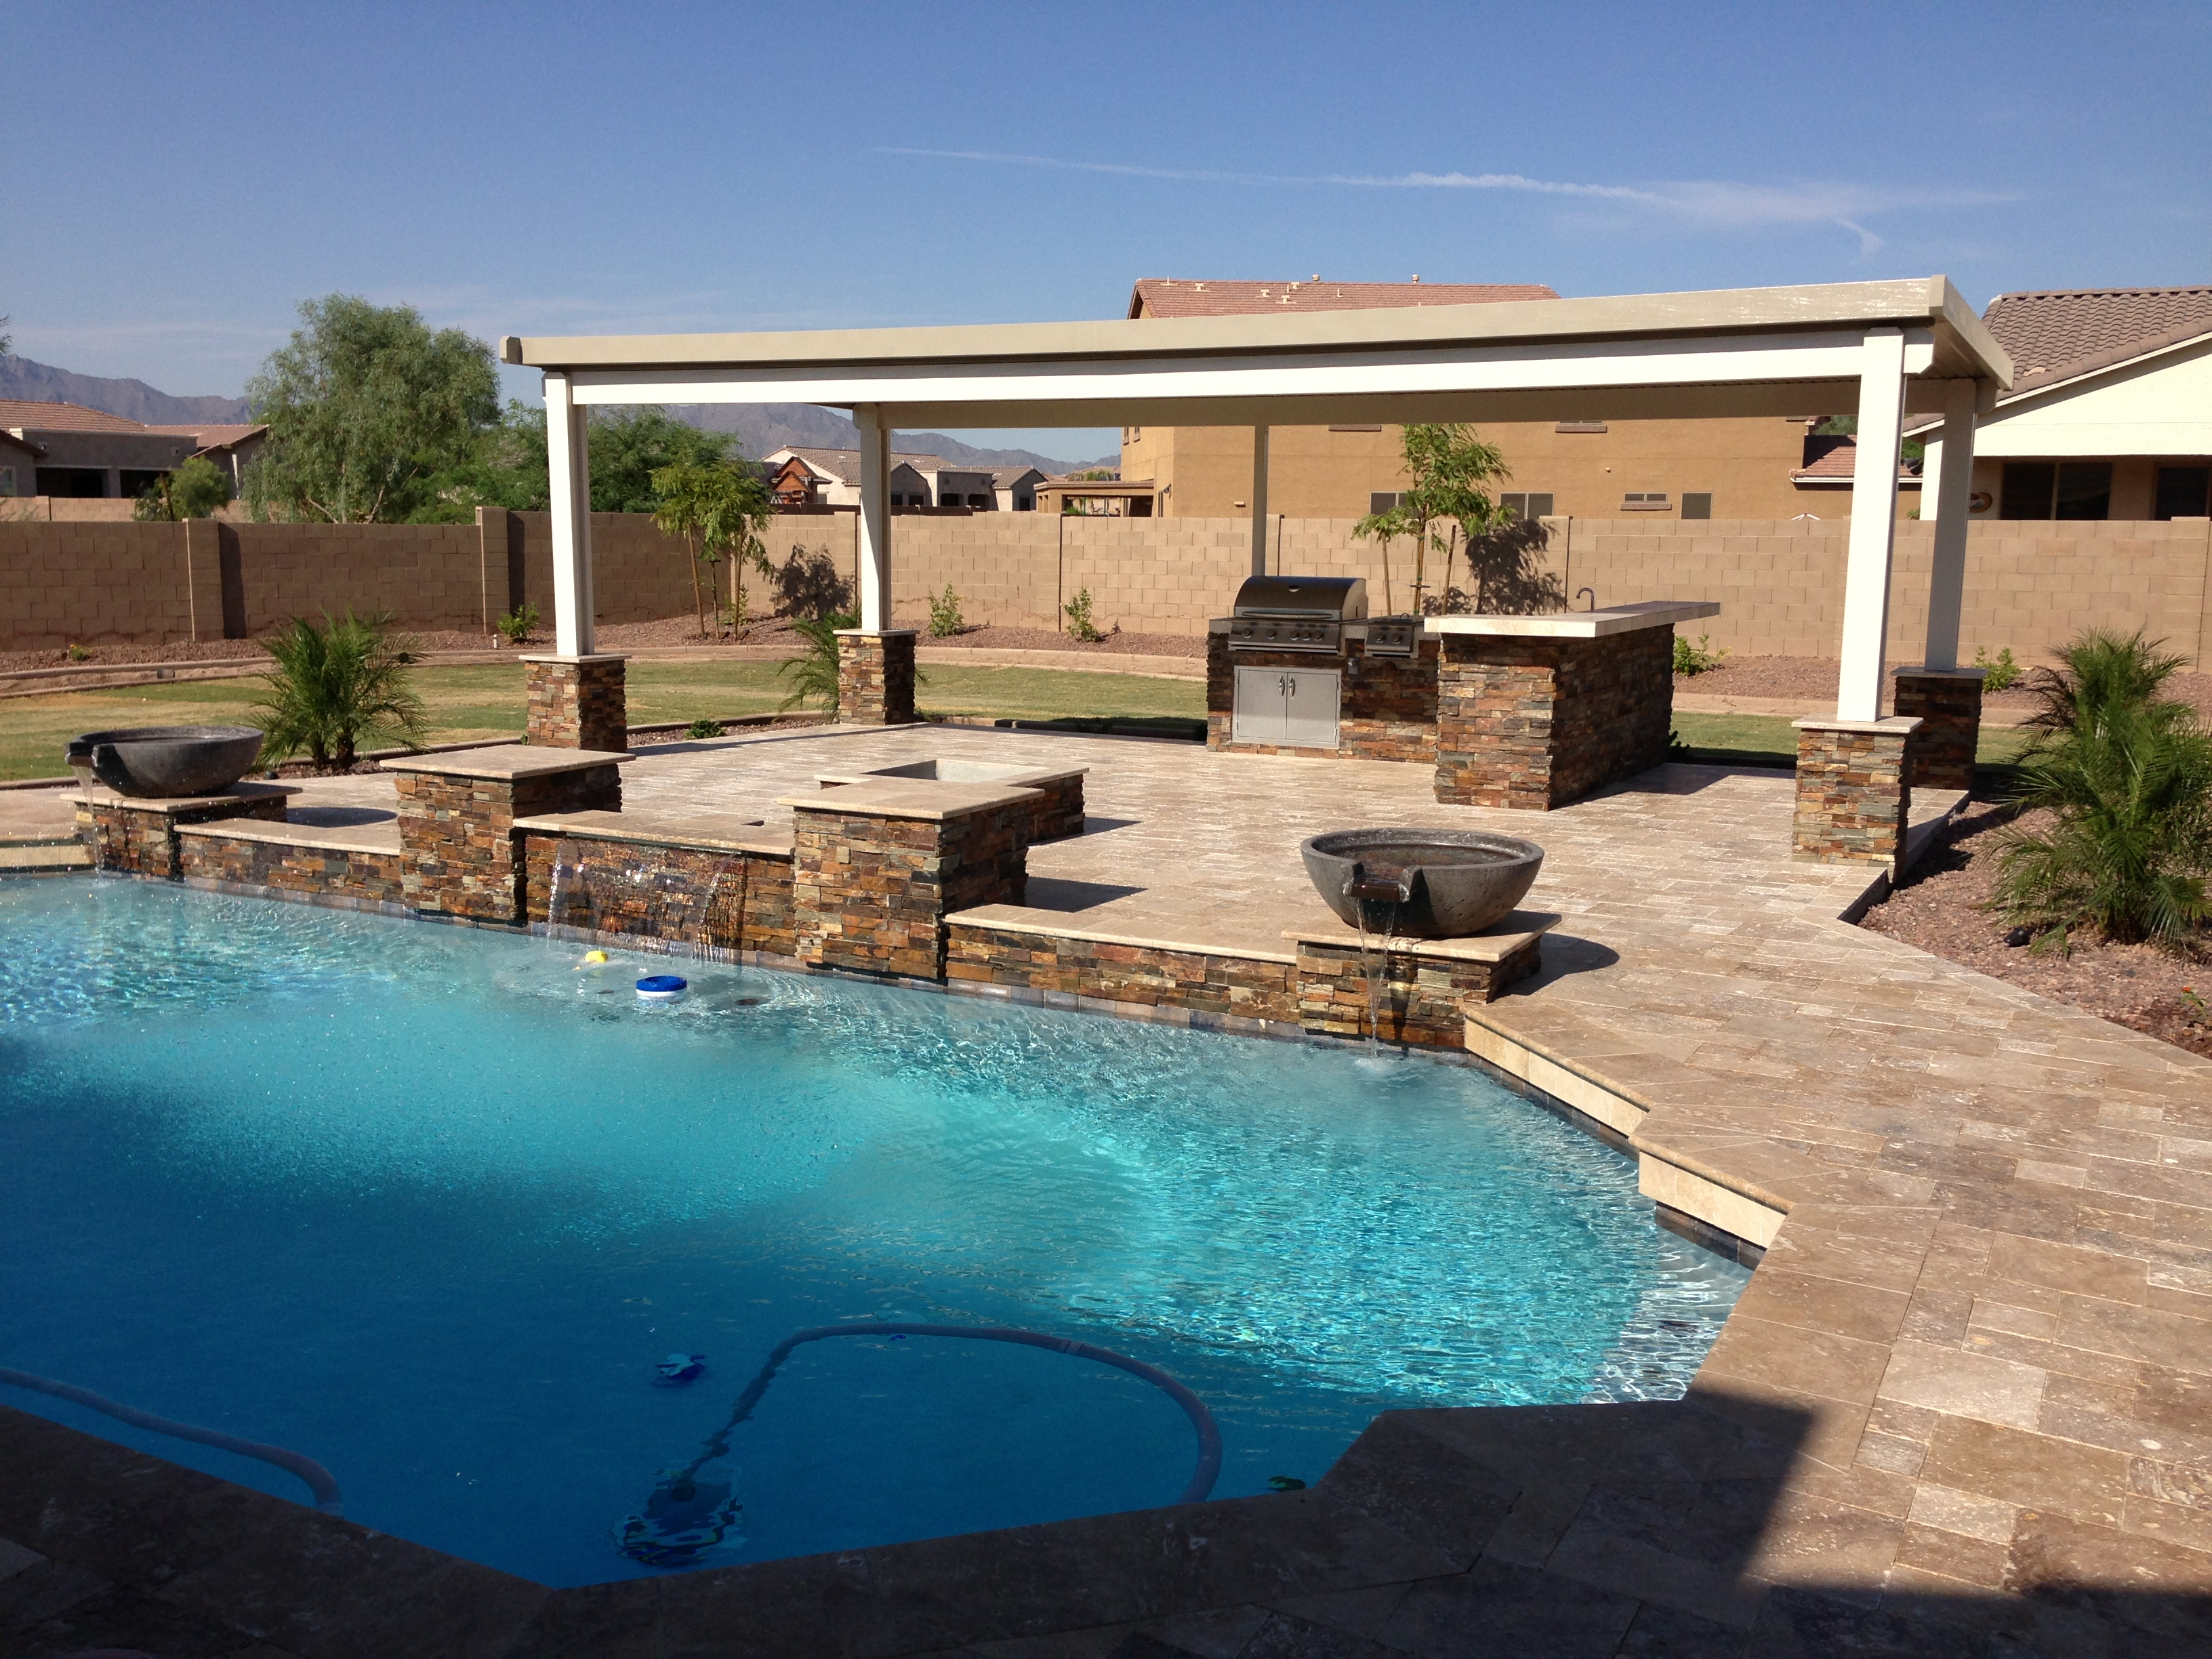 Win Idea Share Backyard Landscape Design Phoenix